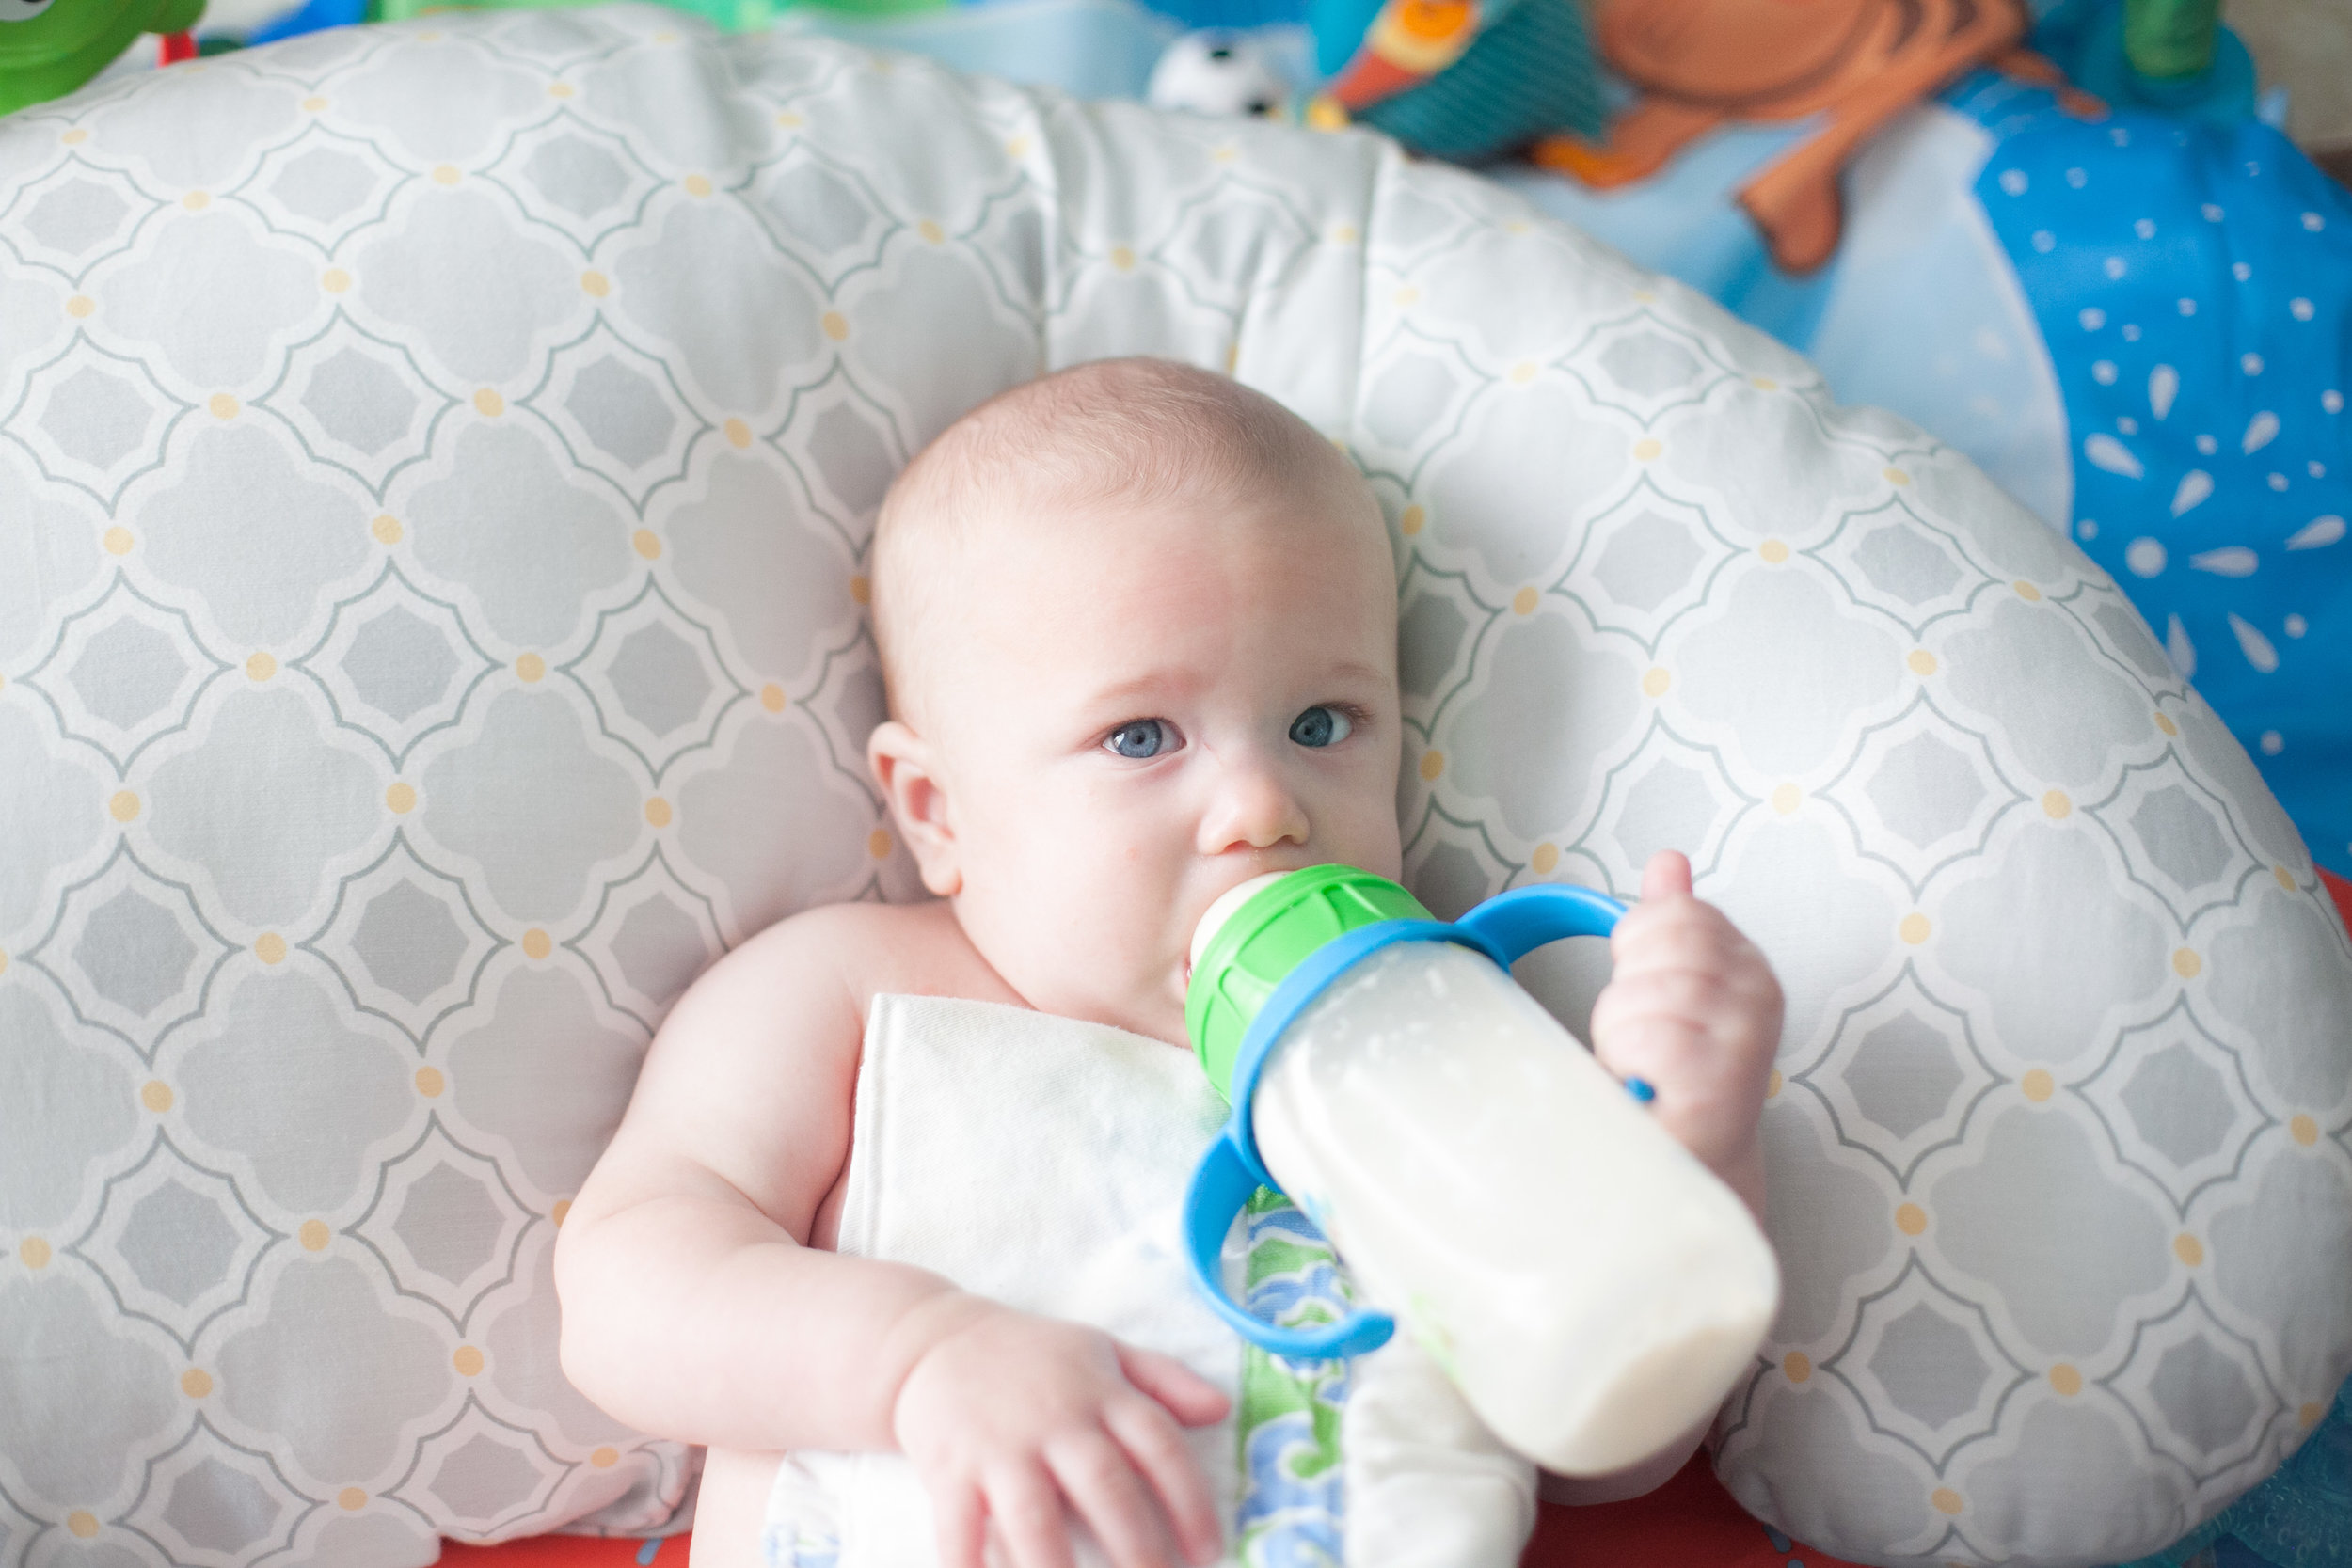 6 month old baby holding a bottle